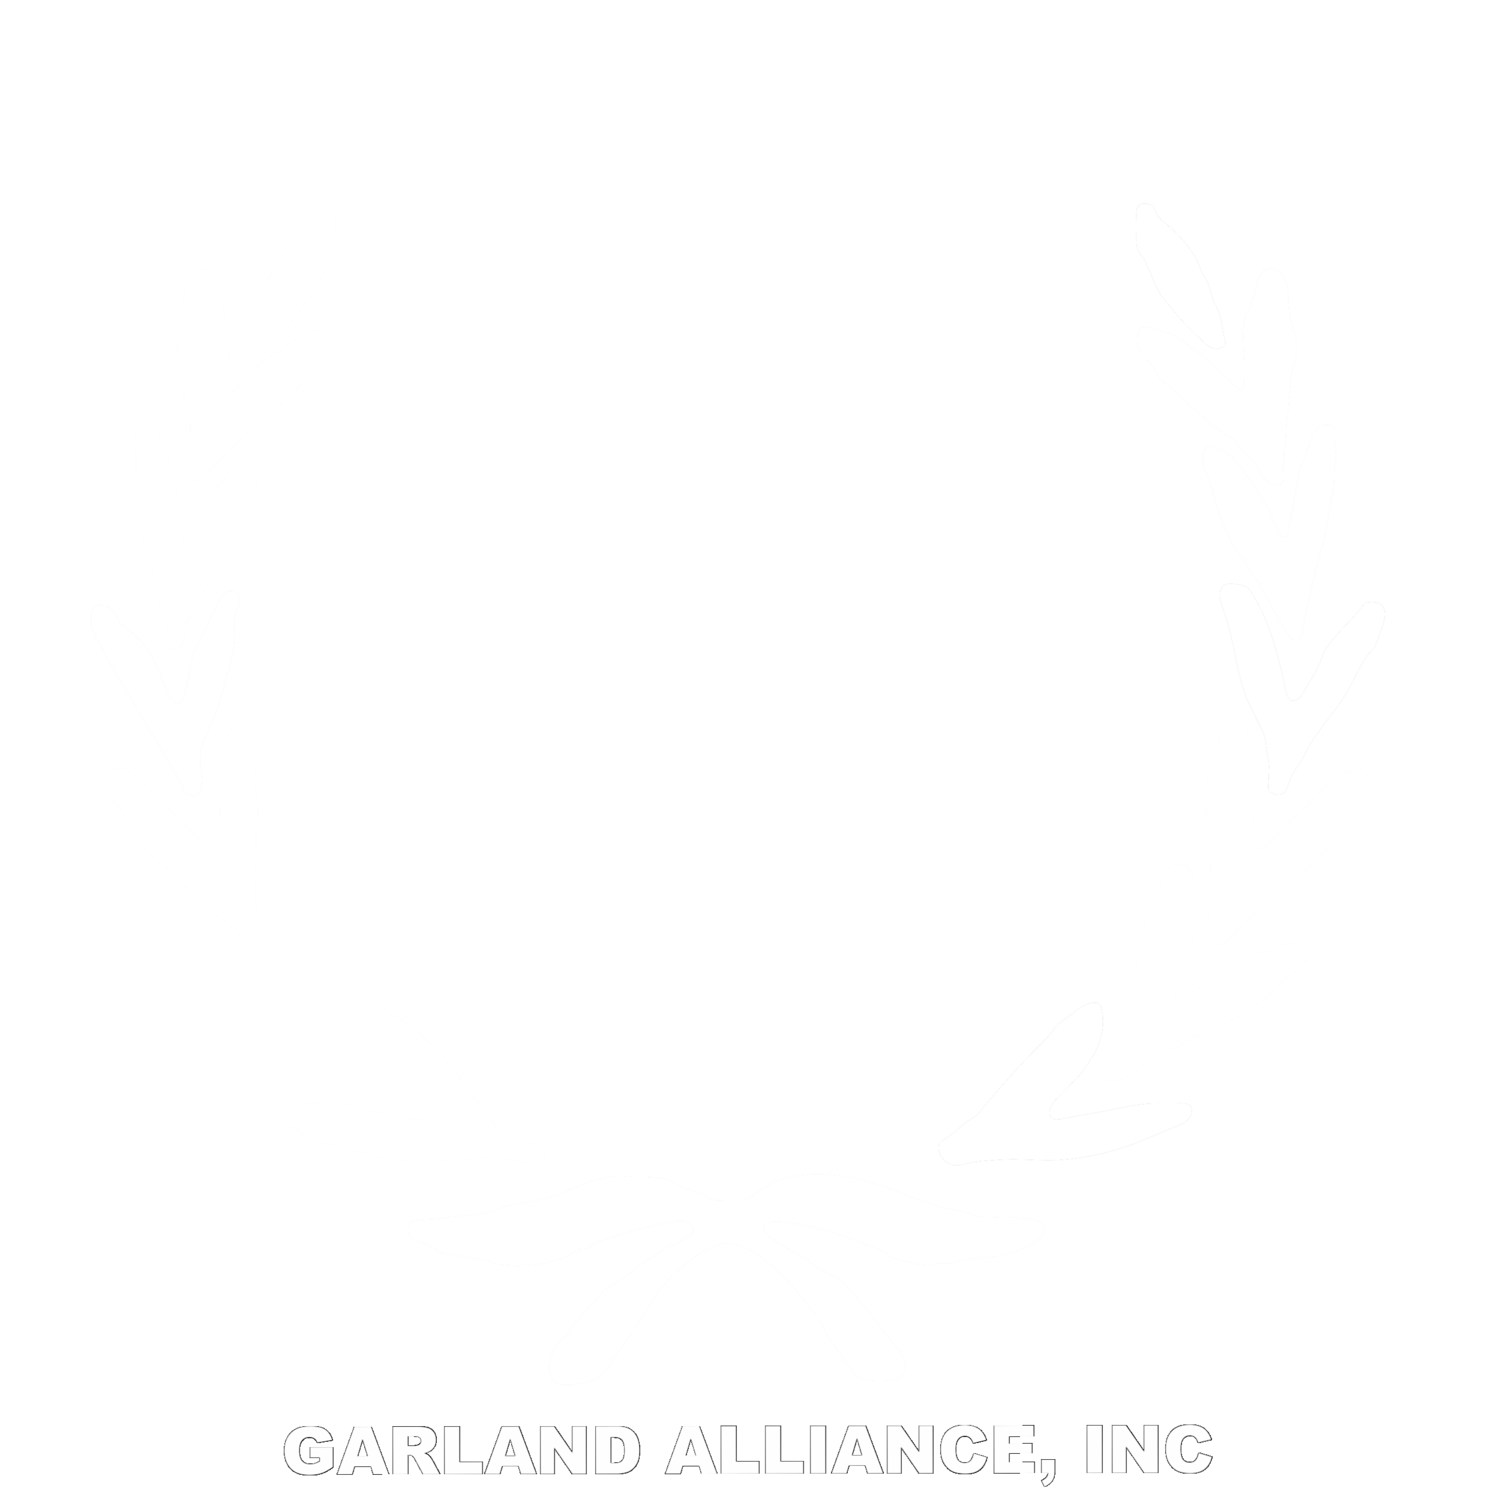 GARLAND ALLIANCE, INC.